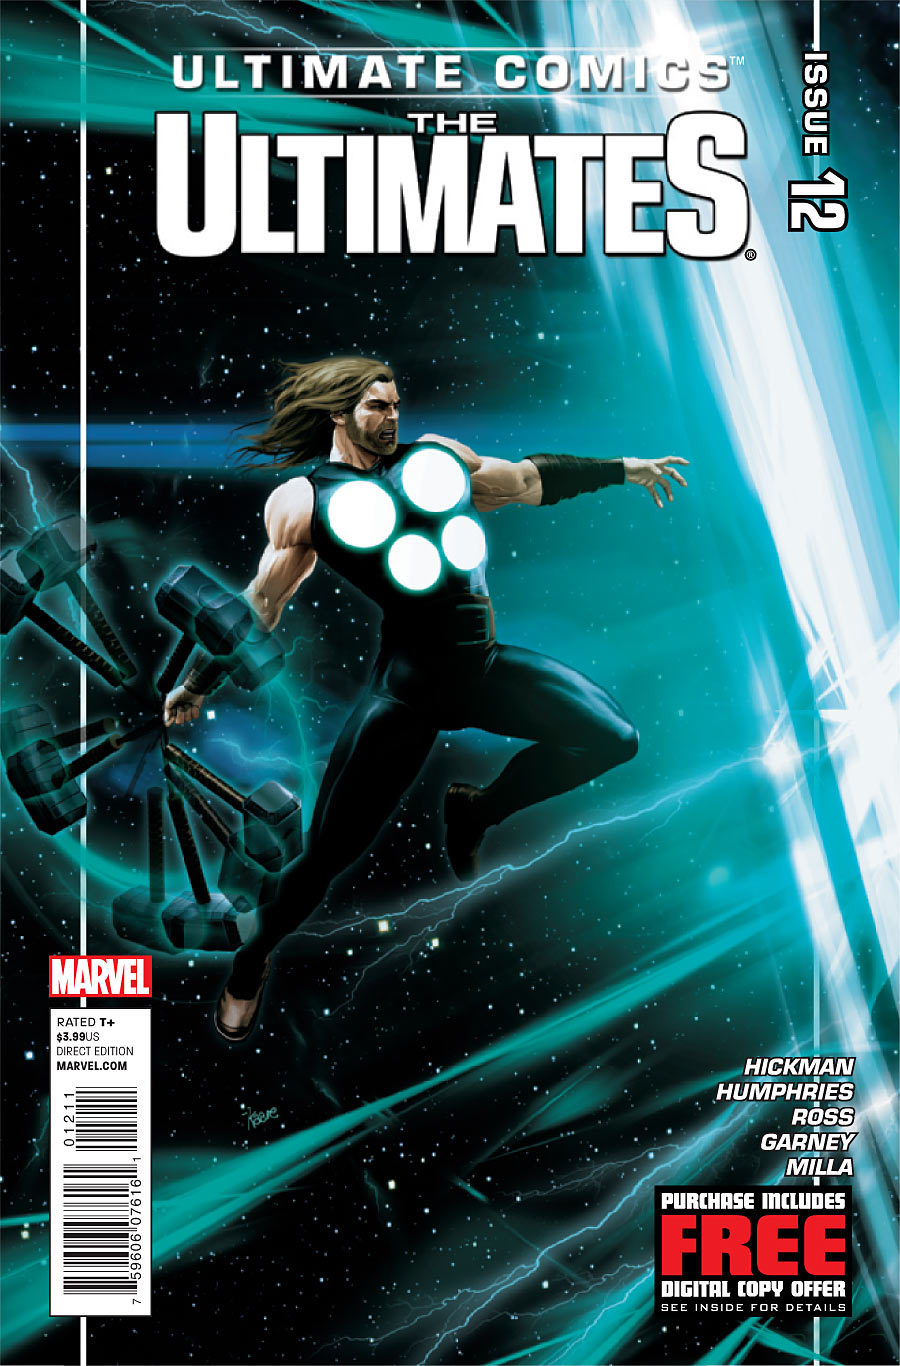 Preview: Ultimates #12 I wrote a Coen Bros. reference into Ultimates #12, on sale Wednesday. First person to find it gets autographed copies of issues 10-12! ULTIMATES issue 12 Two Cities, Two Worlds ON-SALE JUNE 27